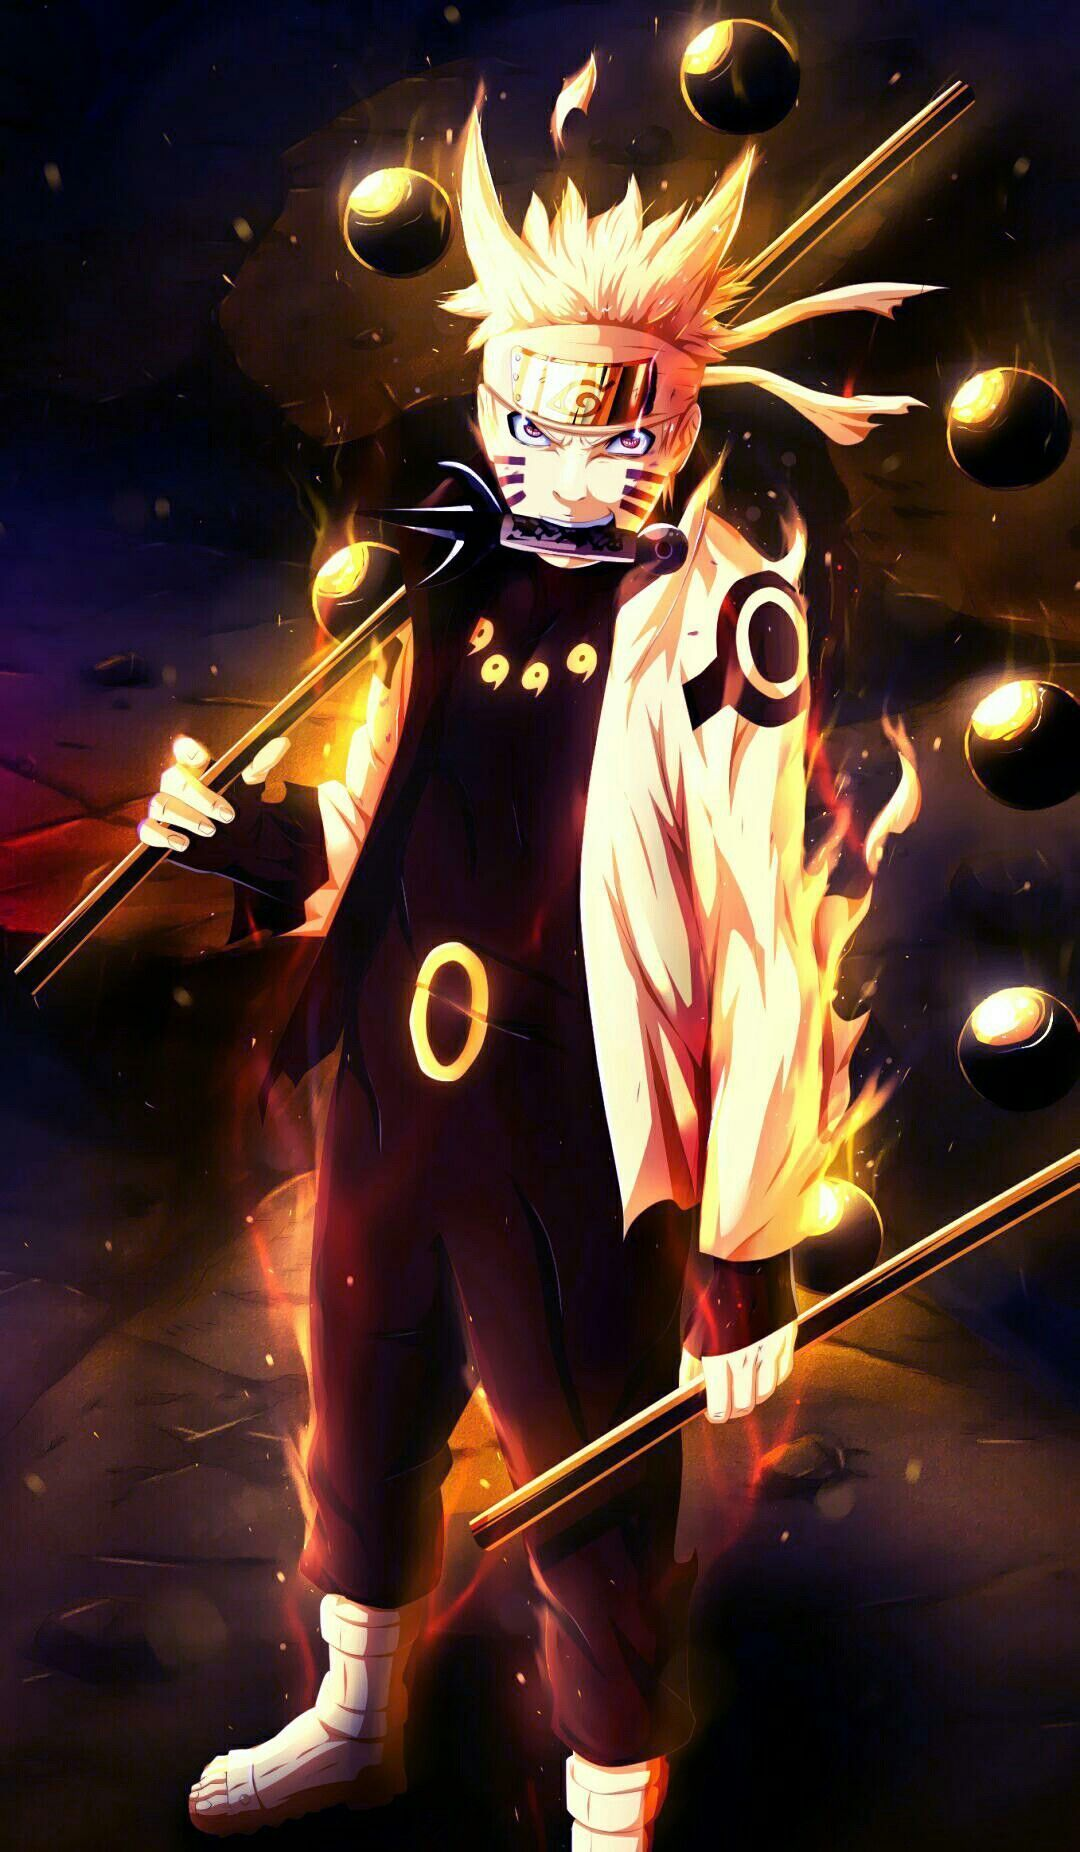 naruto shippuden iphoneandroid iphone desktop hd backgrounds wallpapers 1080p 4k